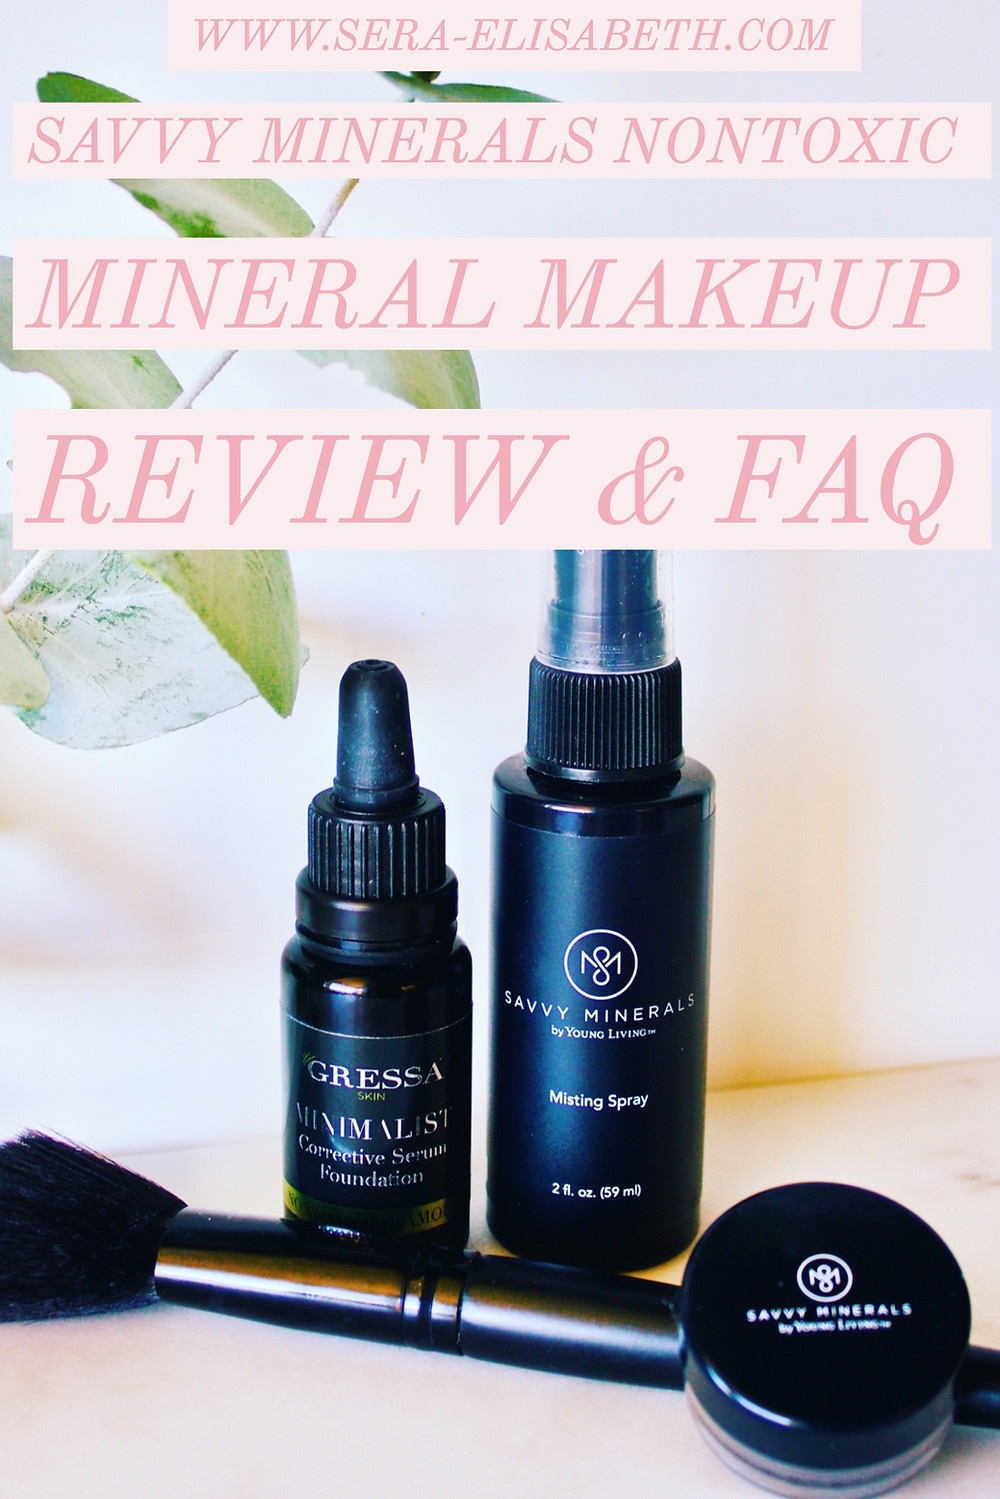 Savvy Minerals Makeup Starter Kit Blog Post